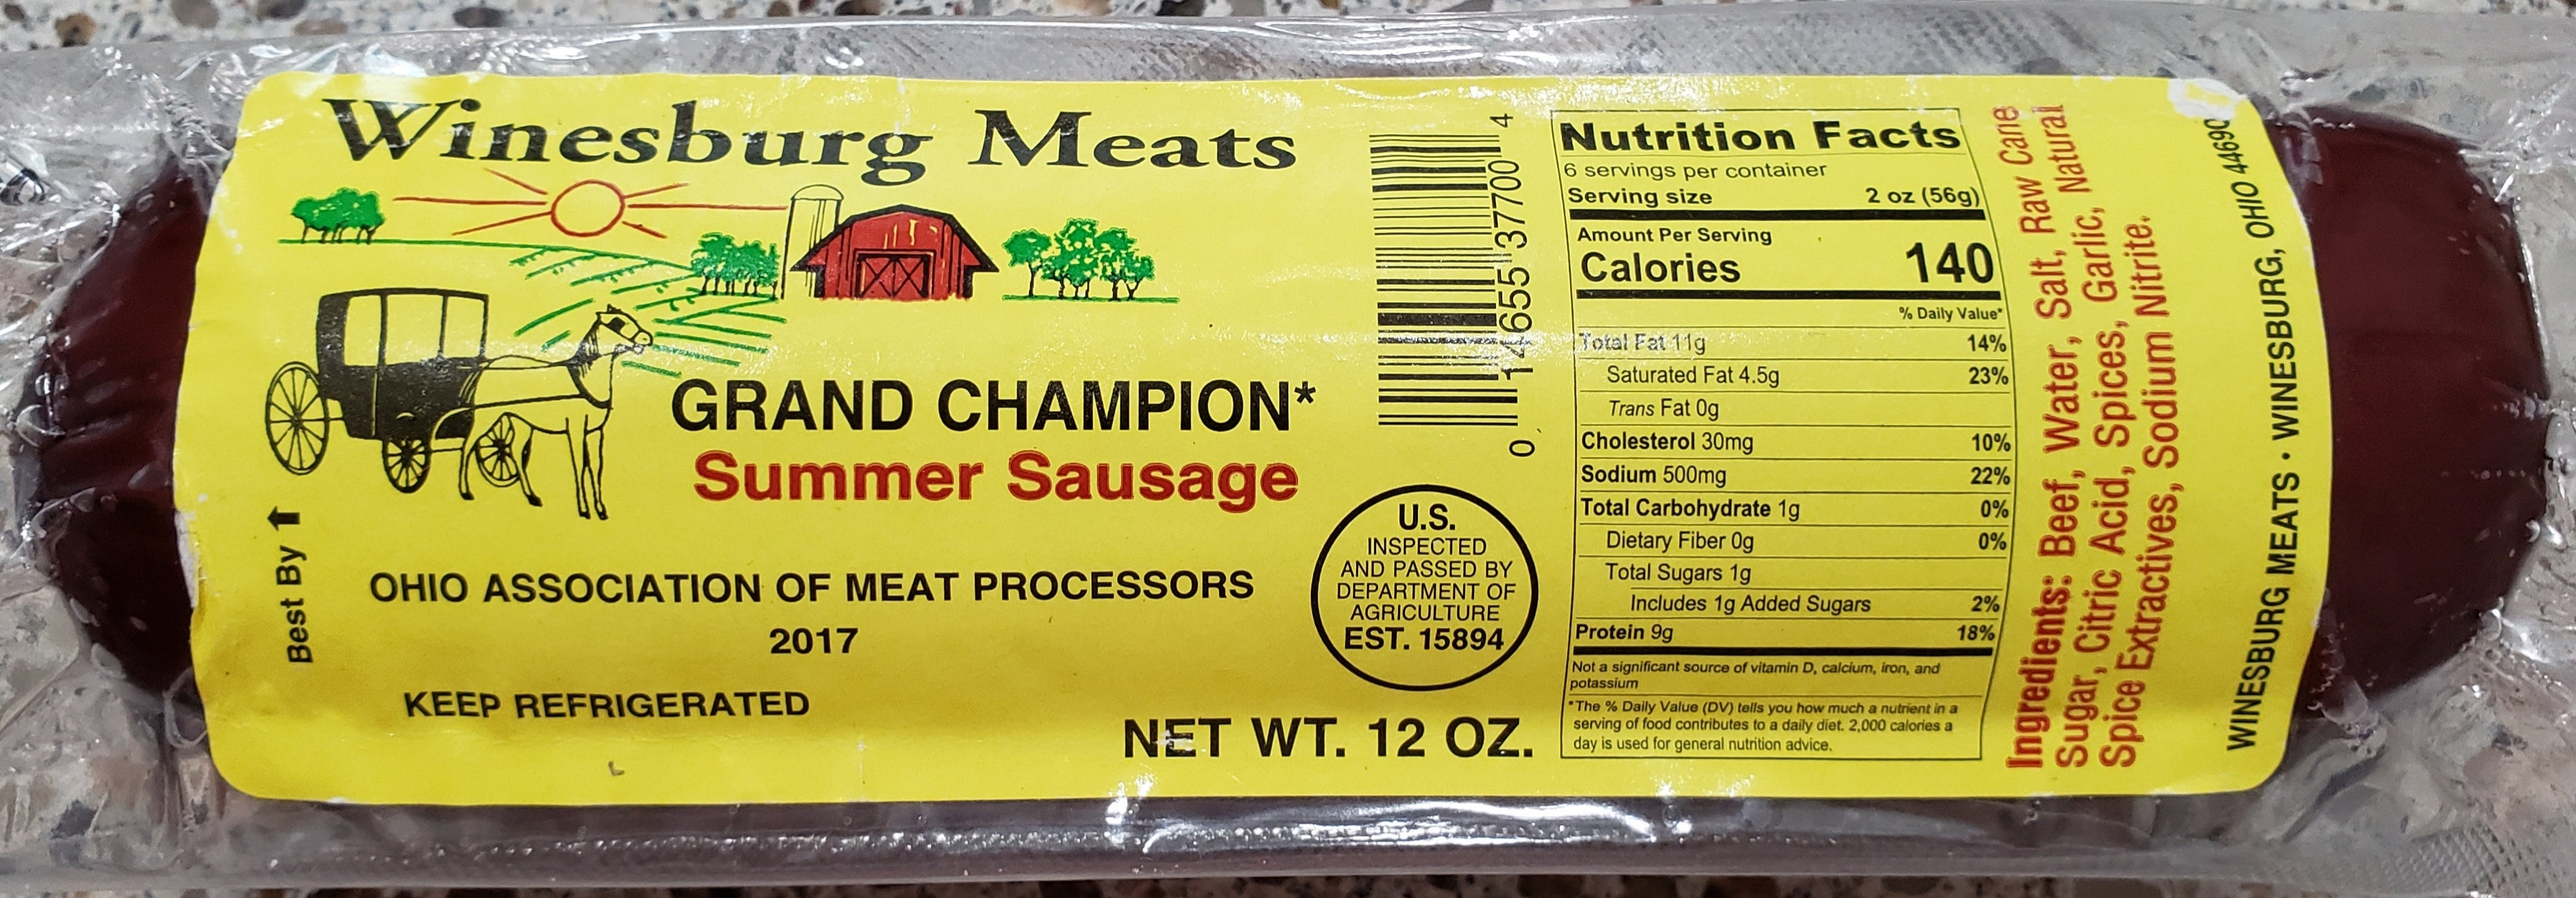 Meats - Summer Sausage